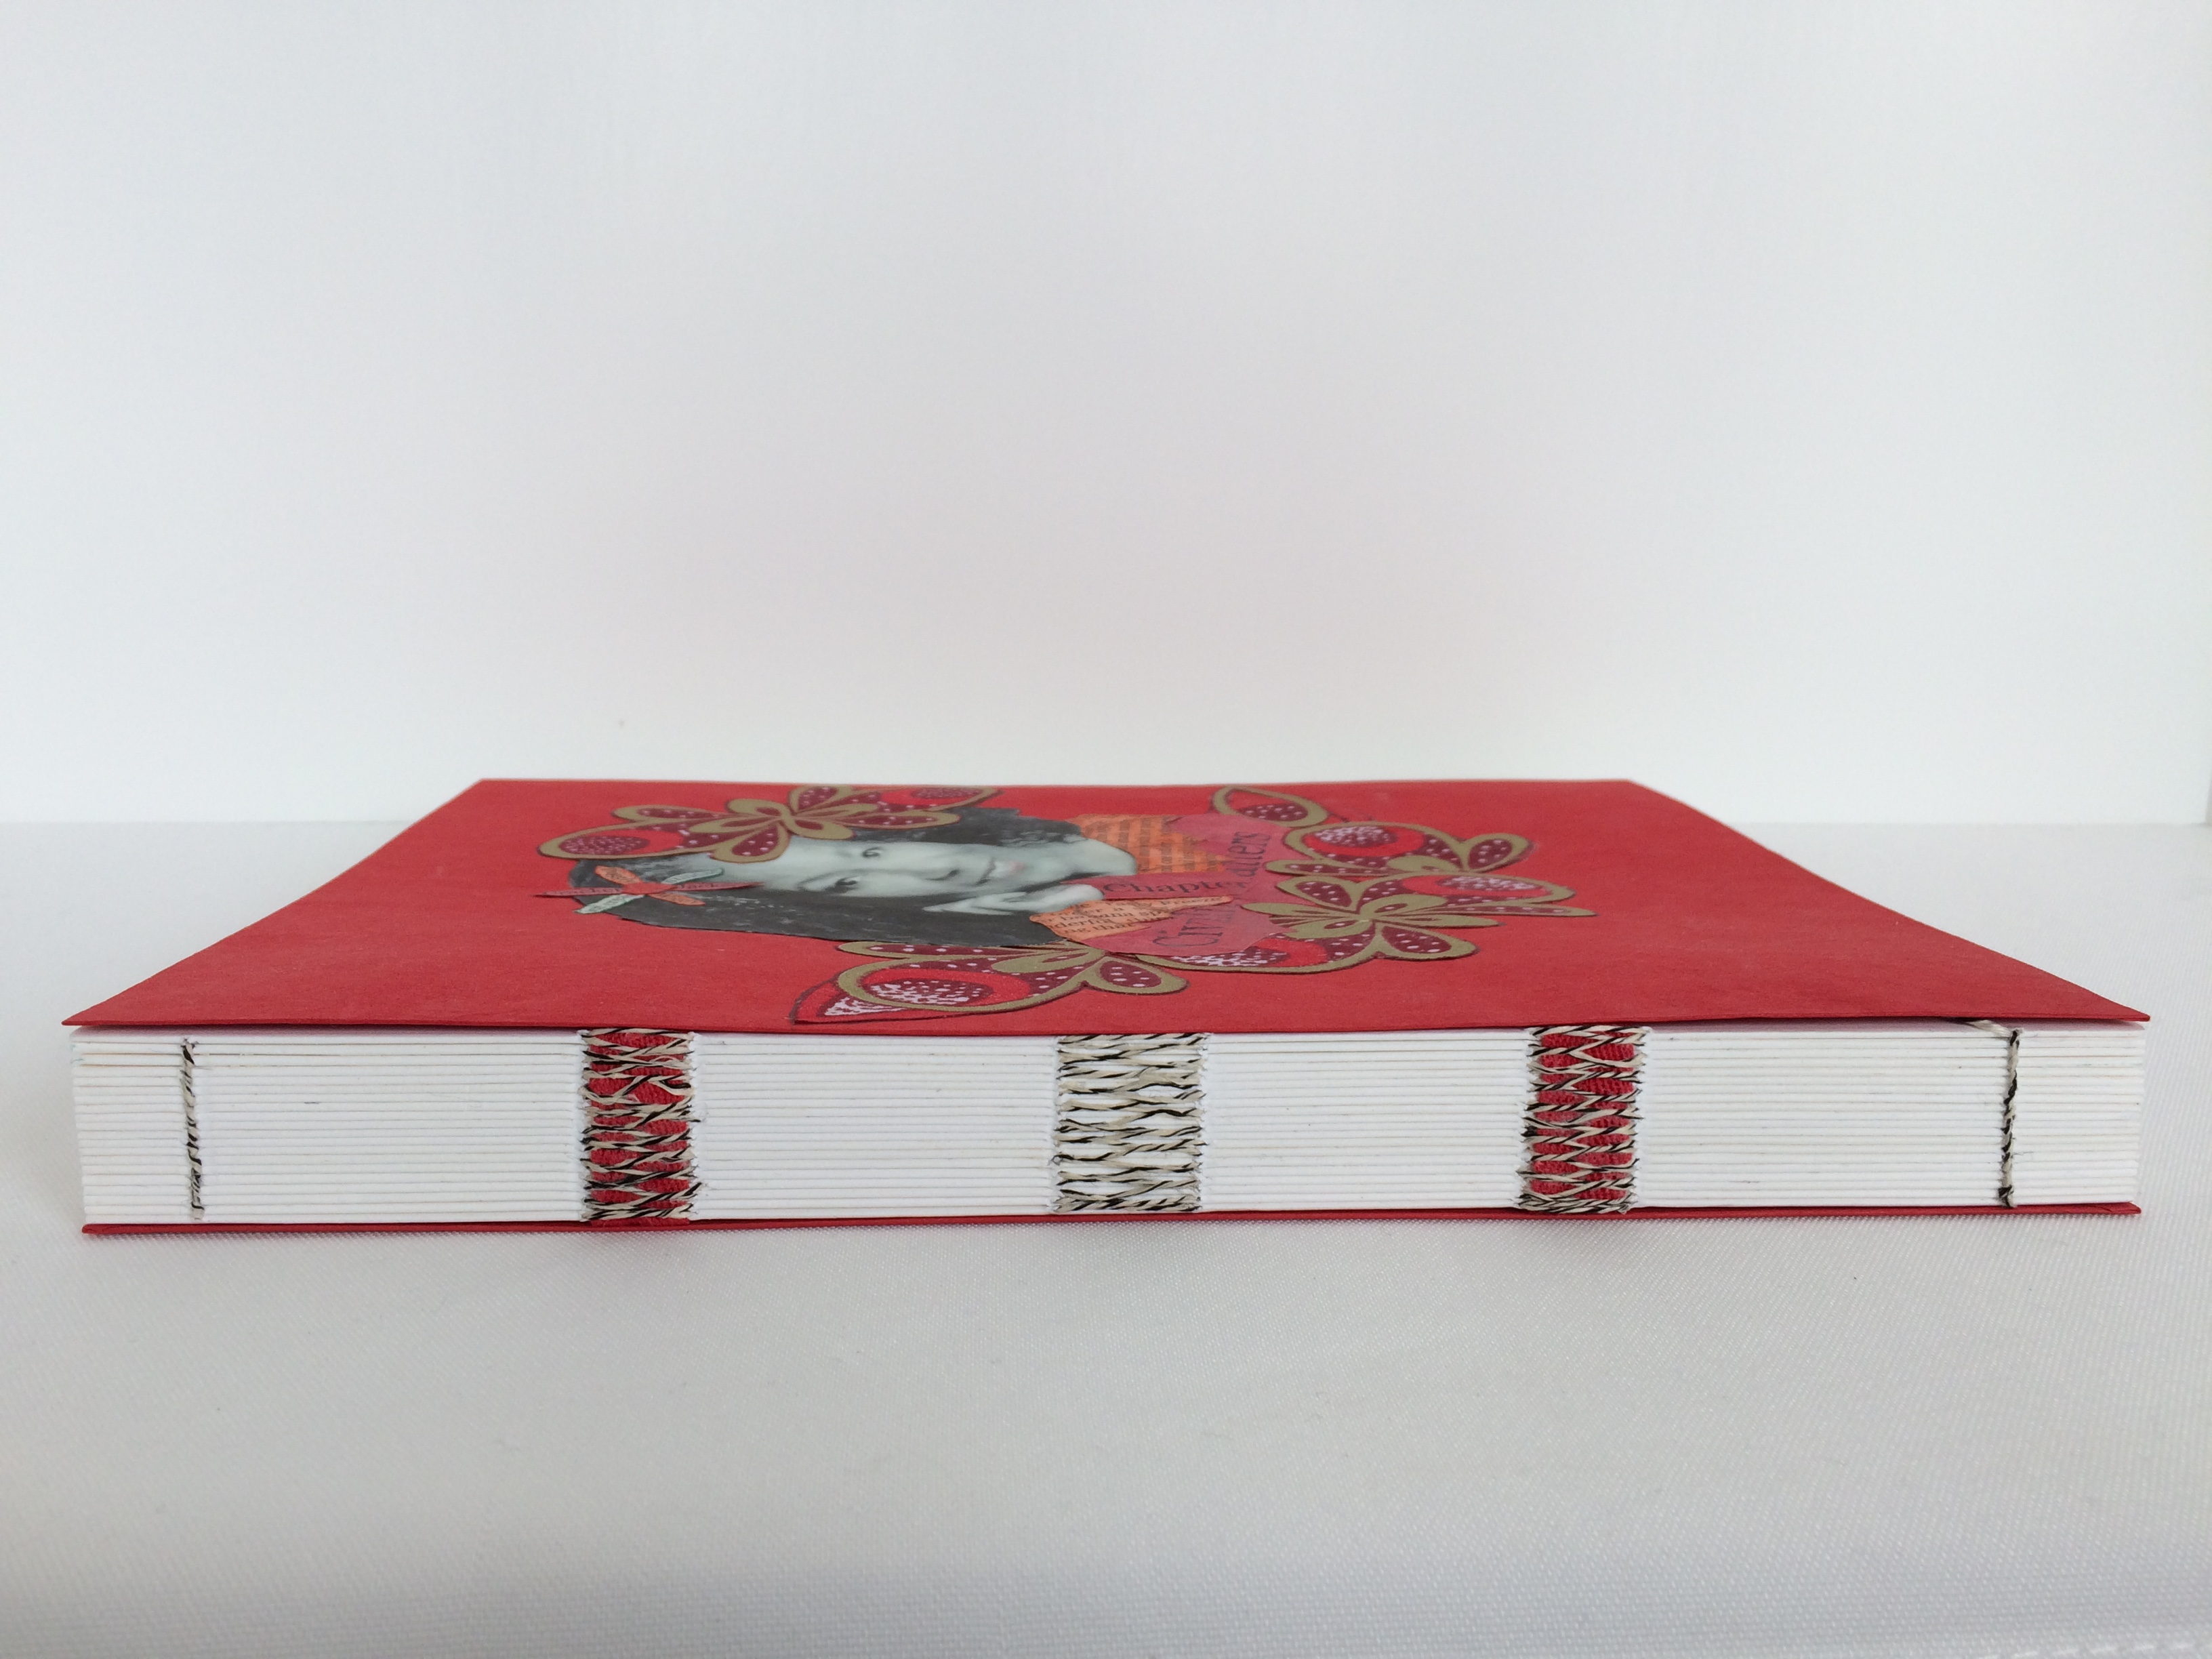 A side view of a red handmade book with a woman's photograph on the front